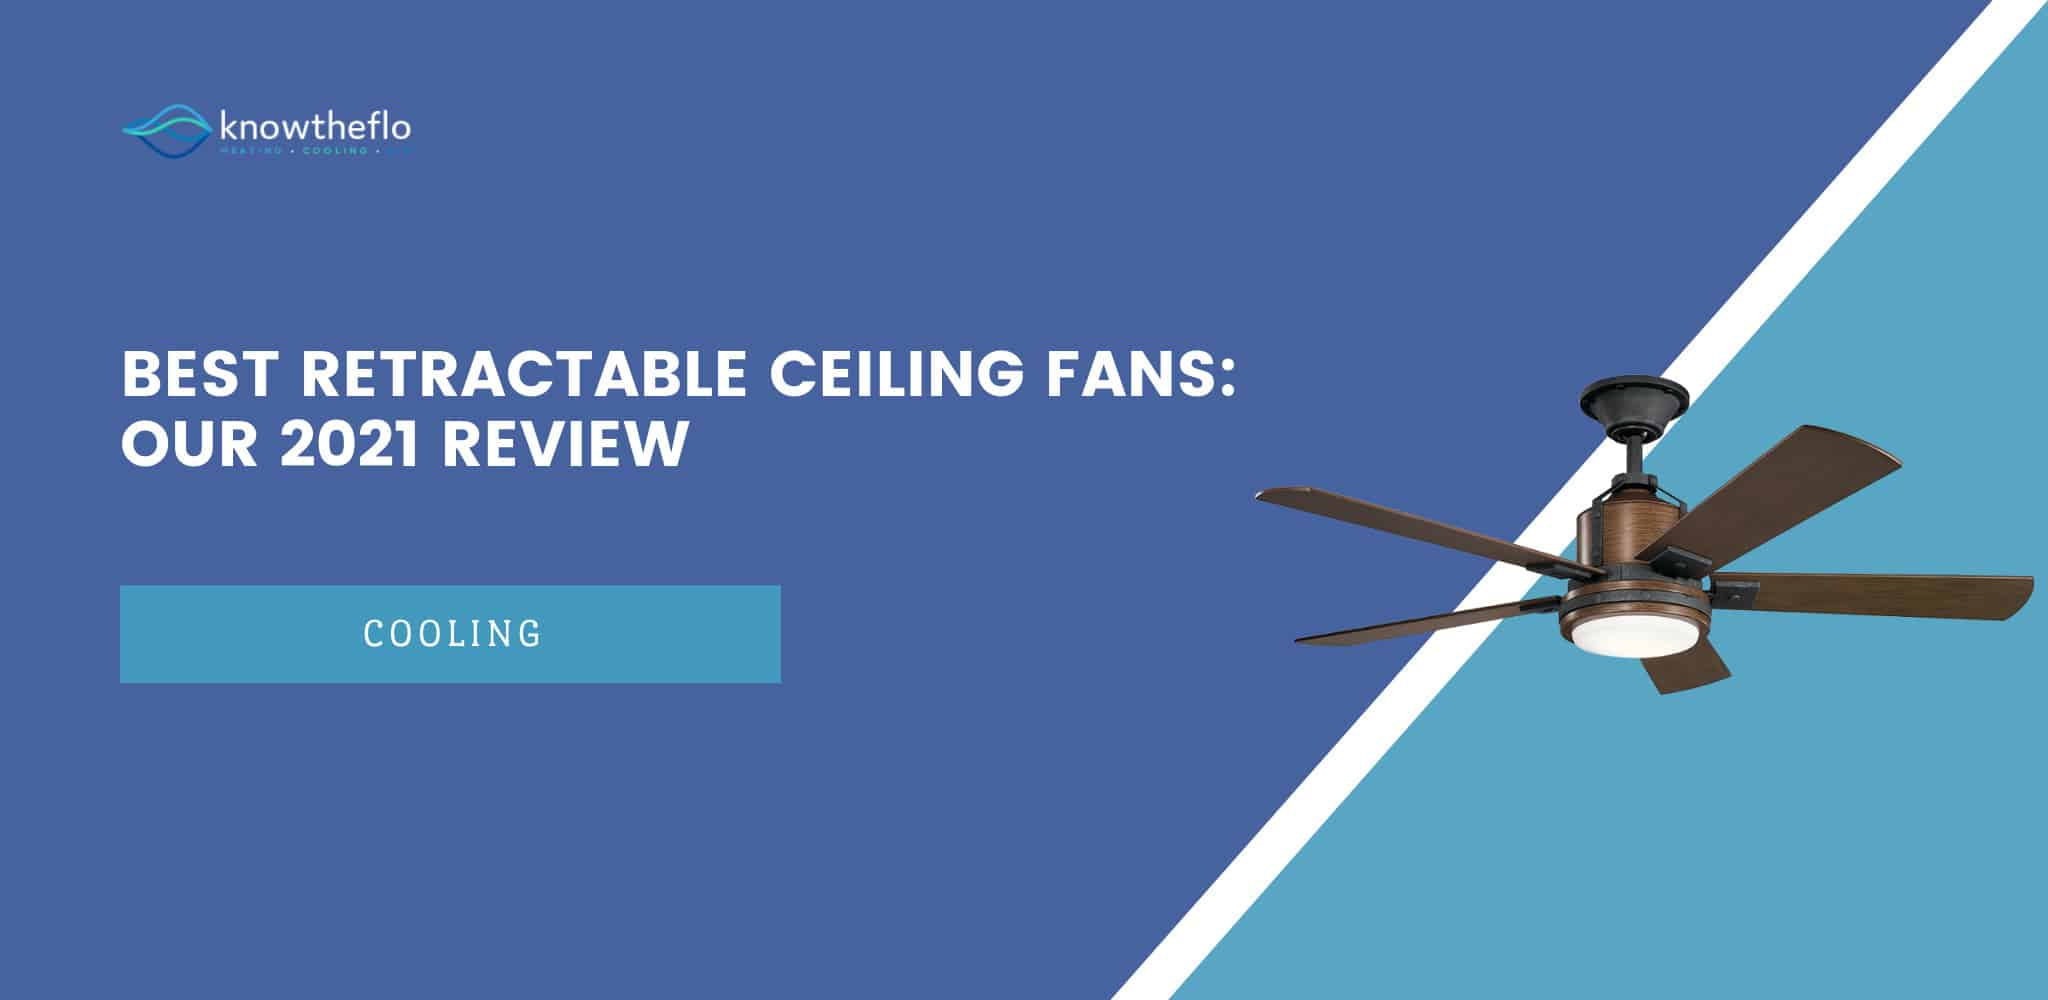 Best Rertractable Ceiling Fans - Our 2020 Review